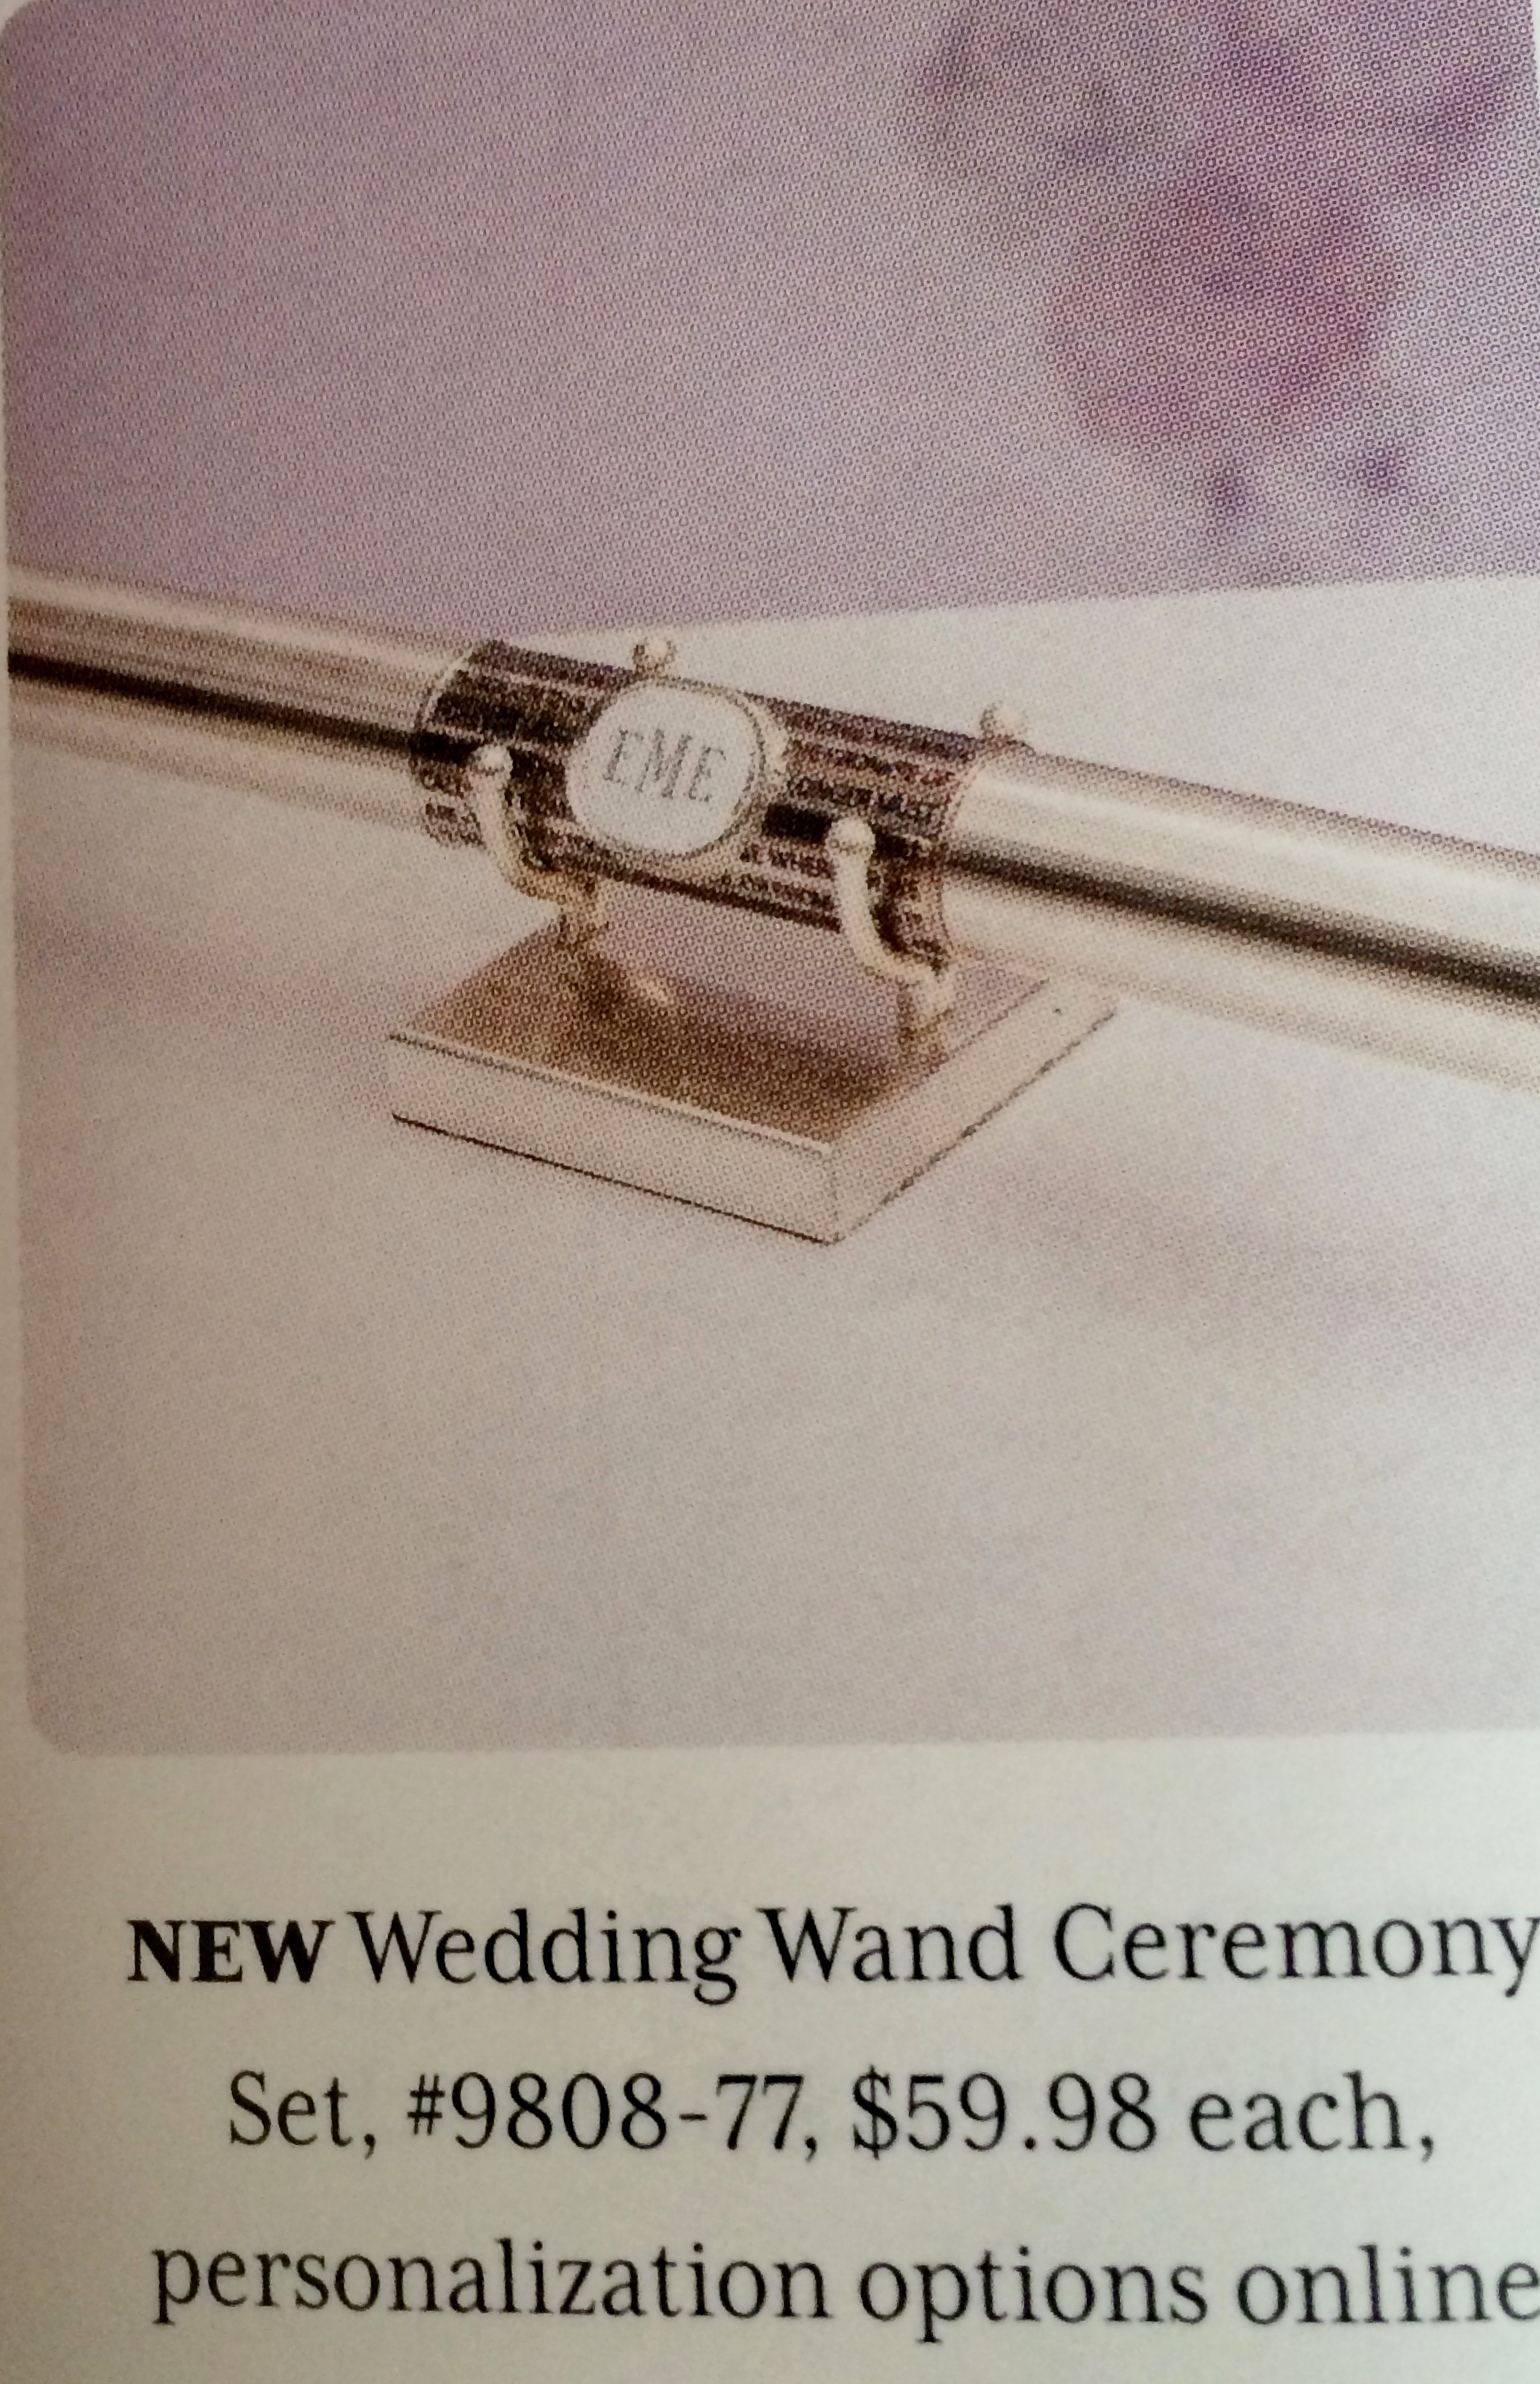 Wedding tips a life of dreams weddings blog 2nd wedding wand wand pricing aiddatafo Images